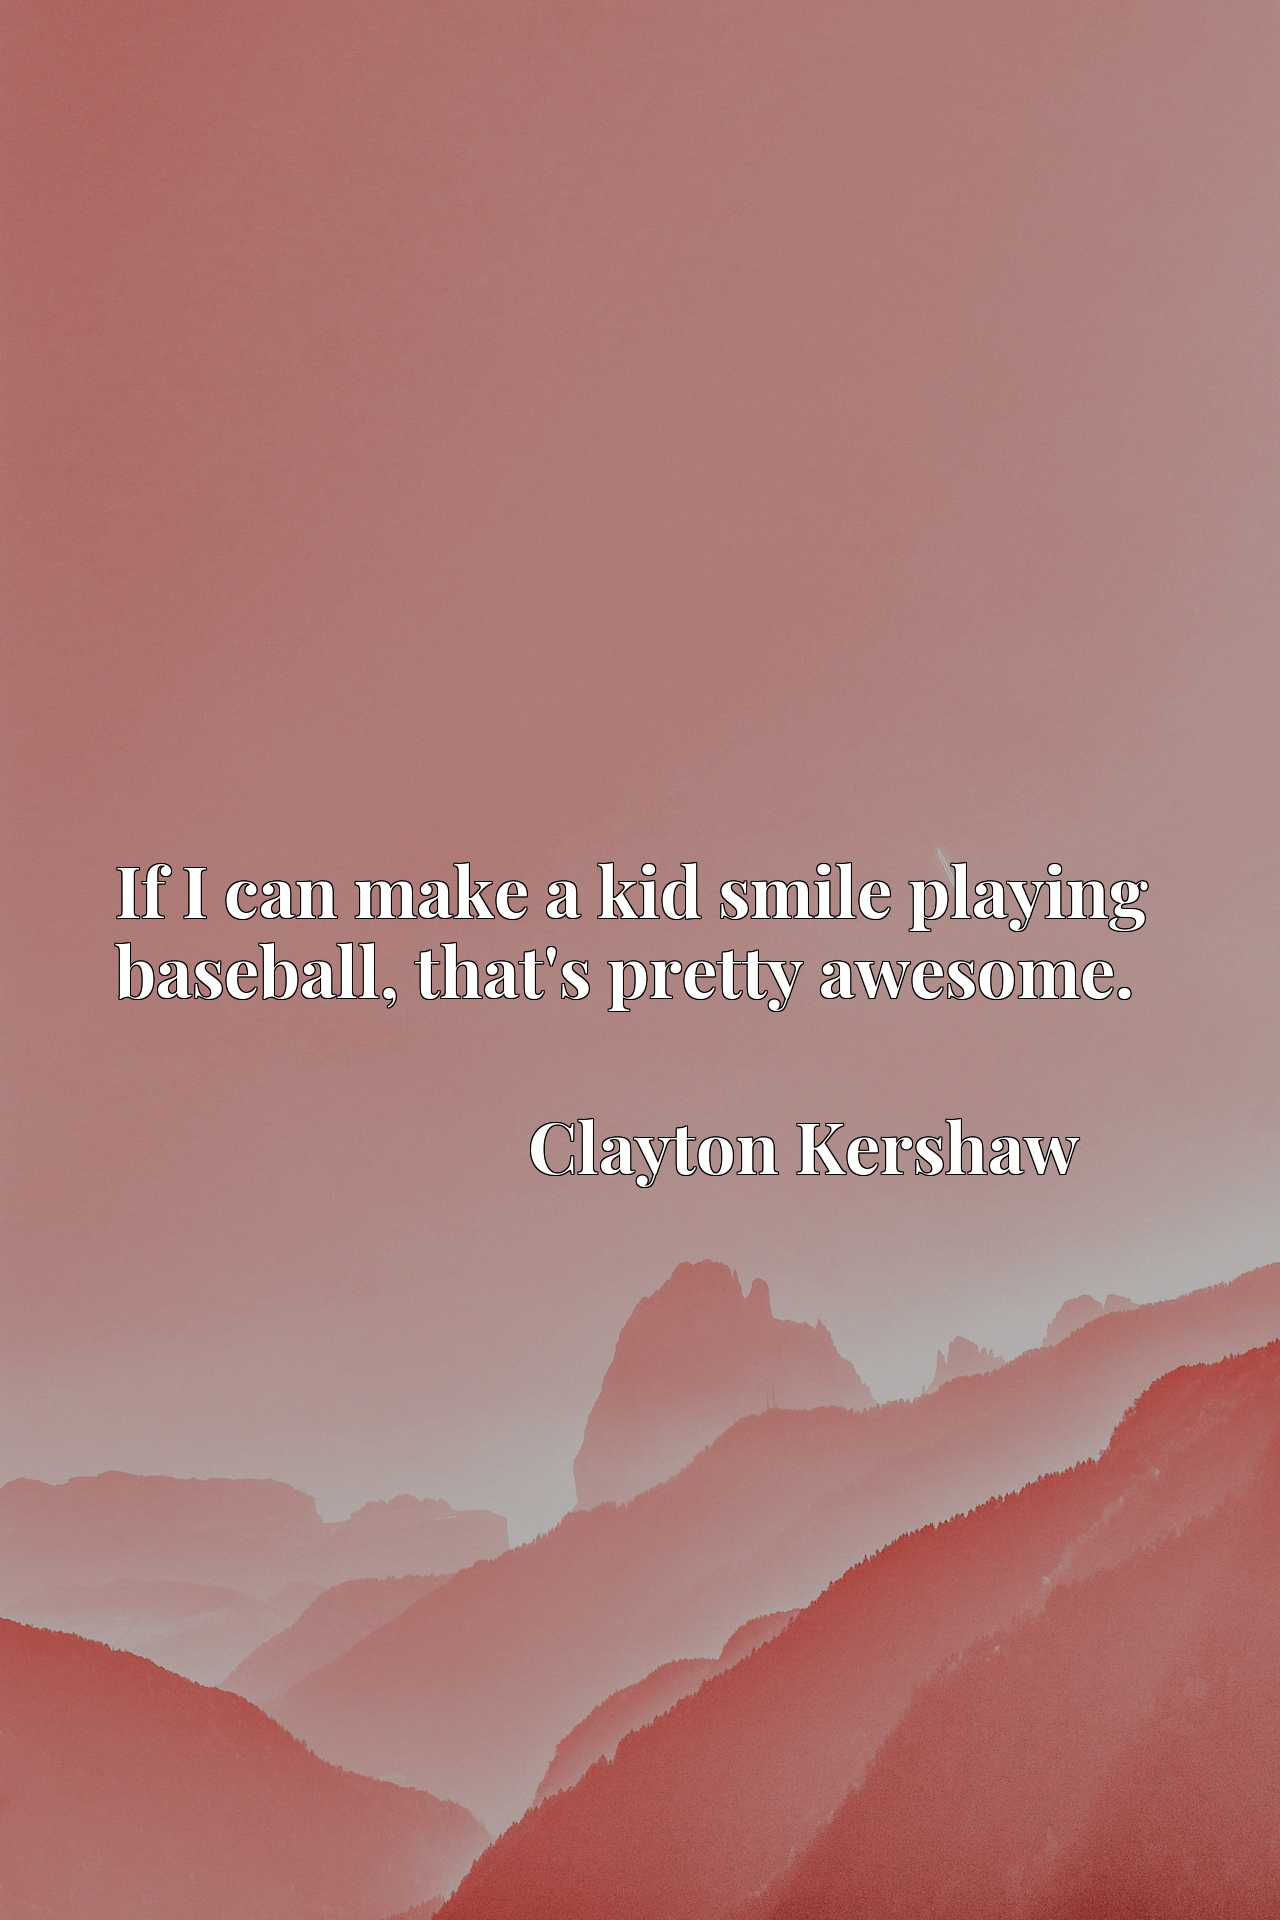 Quote Picture :If I can make a kid smile playing baseball, that's pretty awesome.